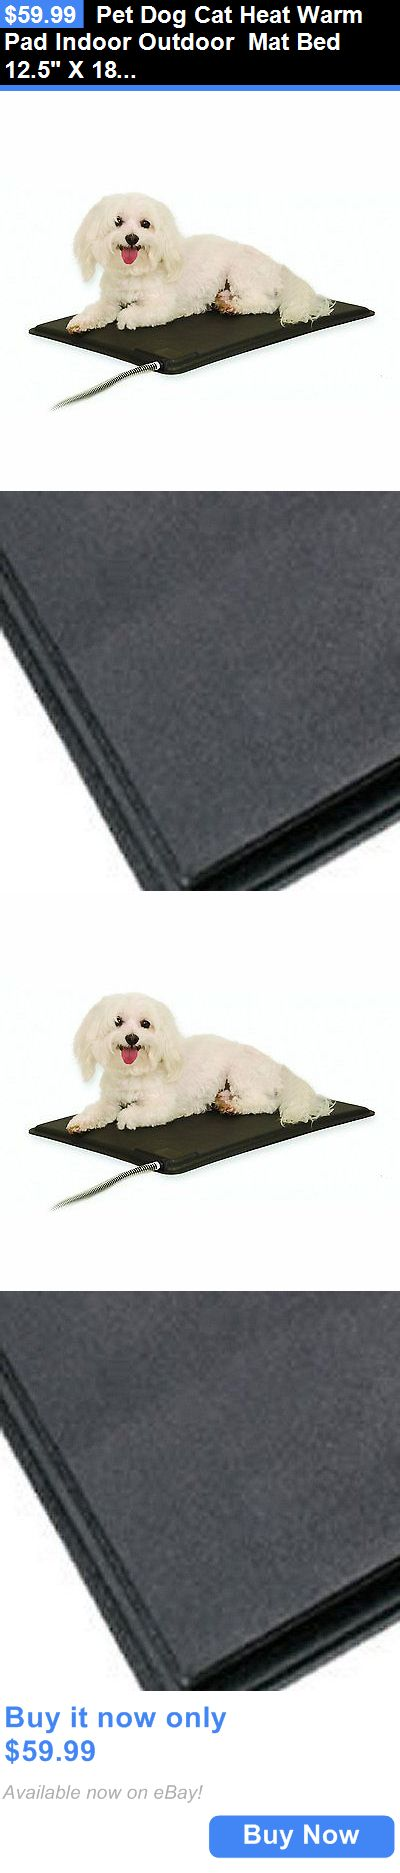 Animals Dog: Pet Dog Cat Heat Warm Pad Indoor Outdoor Mat Bed 12.5 X 18.5 Heated Pad BUY IT NOW ONLY: $59.99